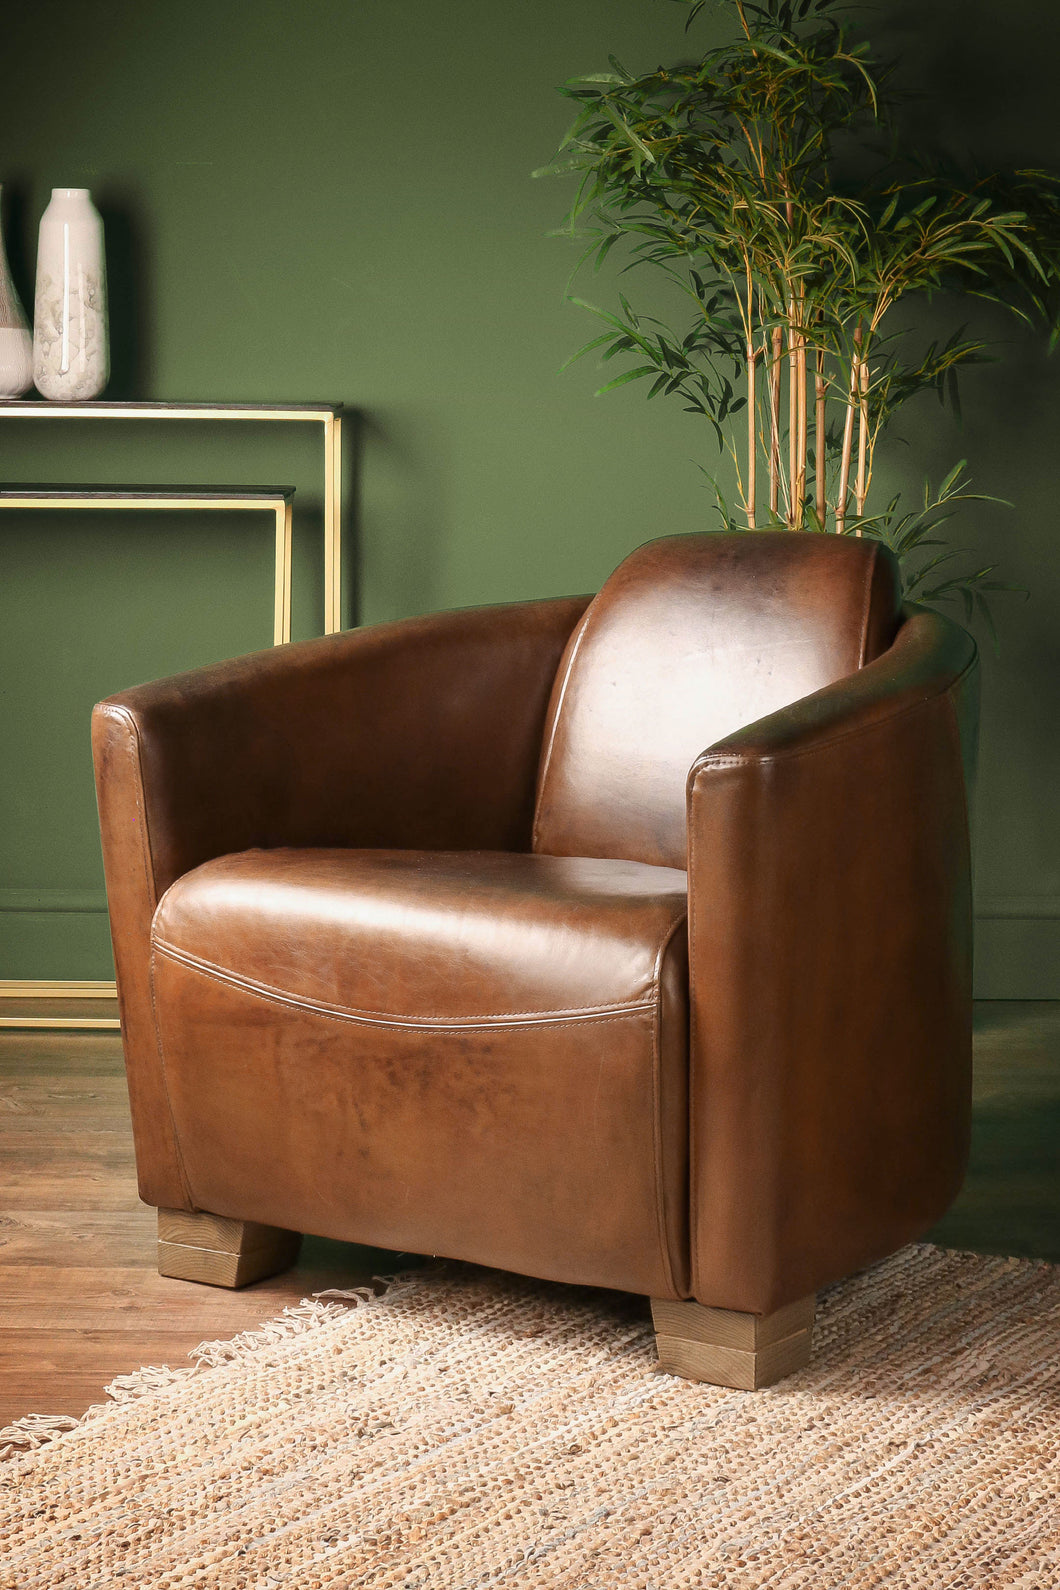 Brazilian Leather Cigar Chair Vintage Club Seat Occasional Chair